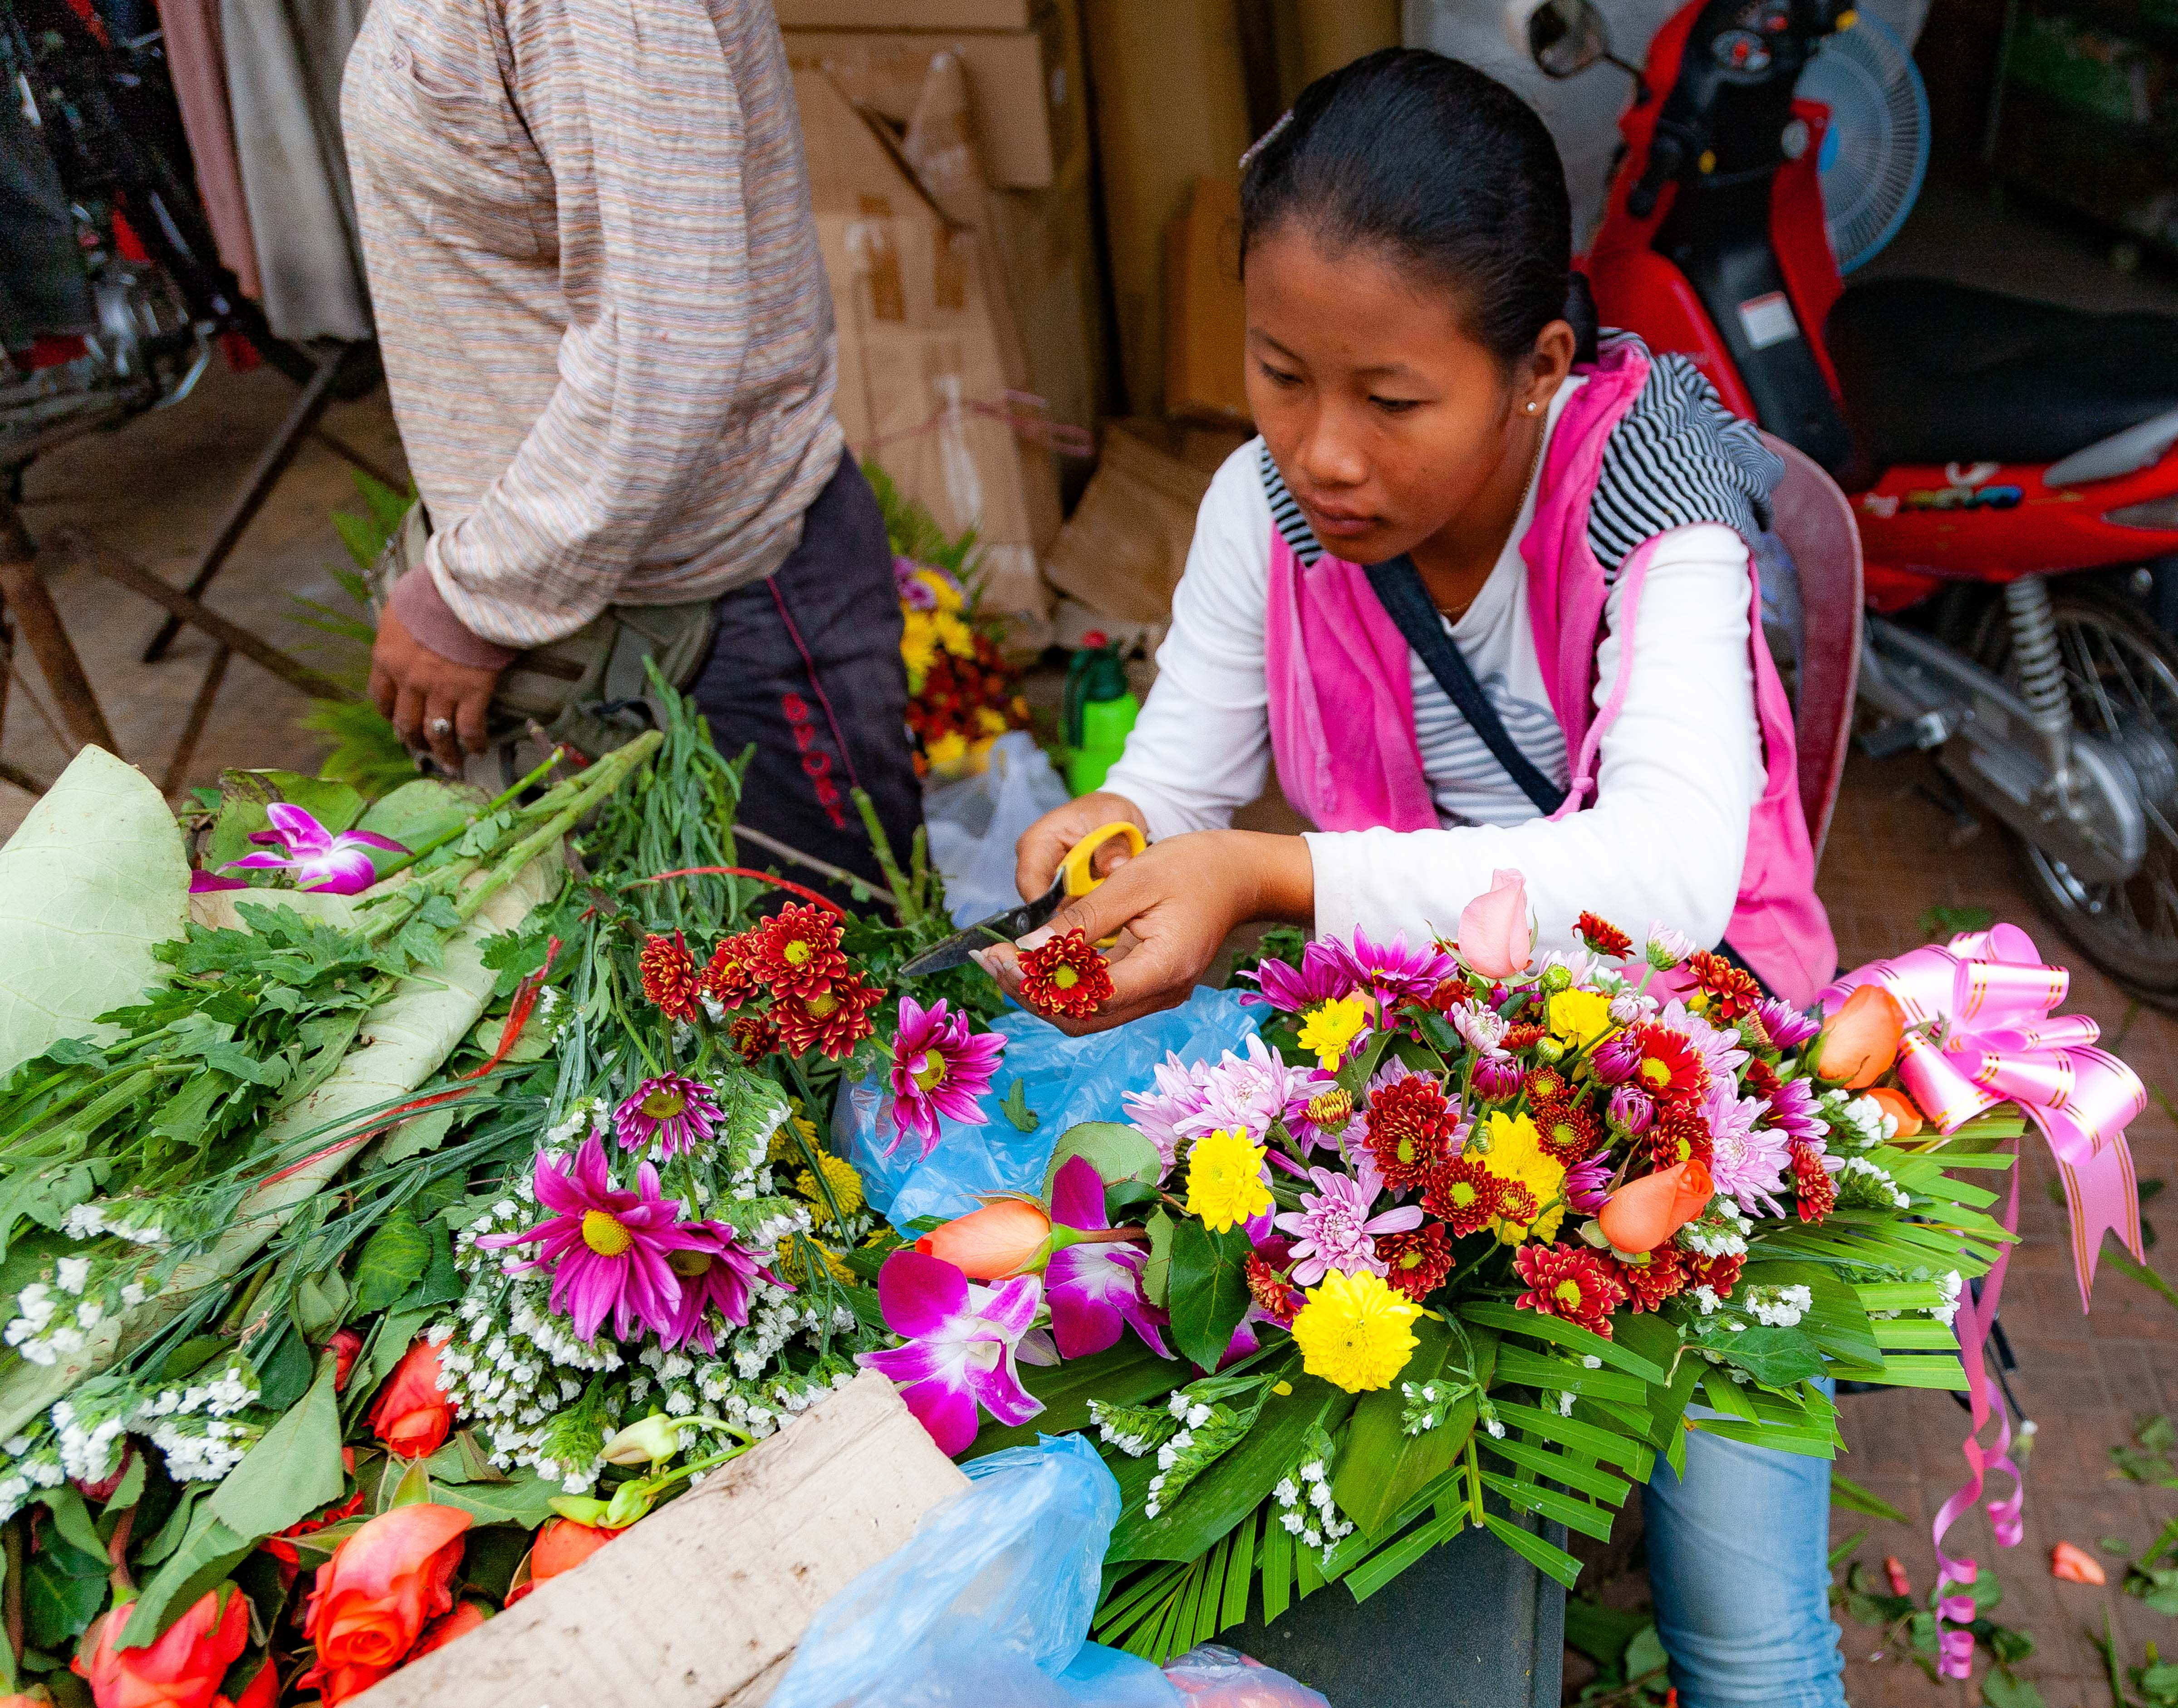 Cambodia, Kampong Chaam Prov, Flower Vendor, 2010, IMG 5352